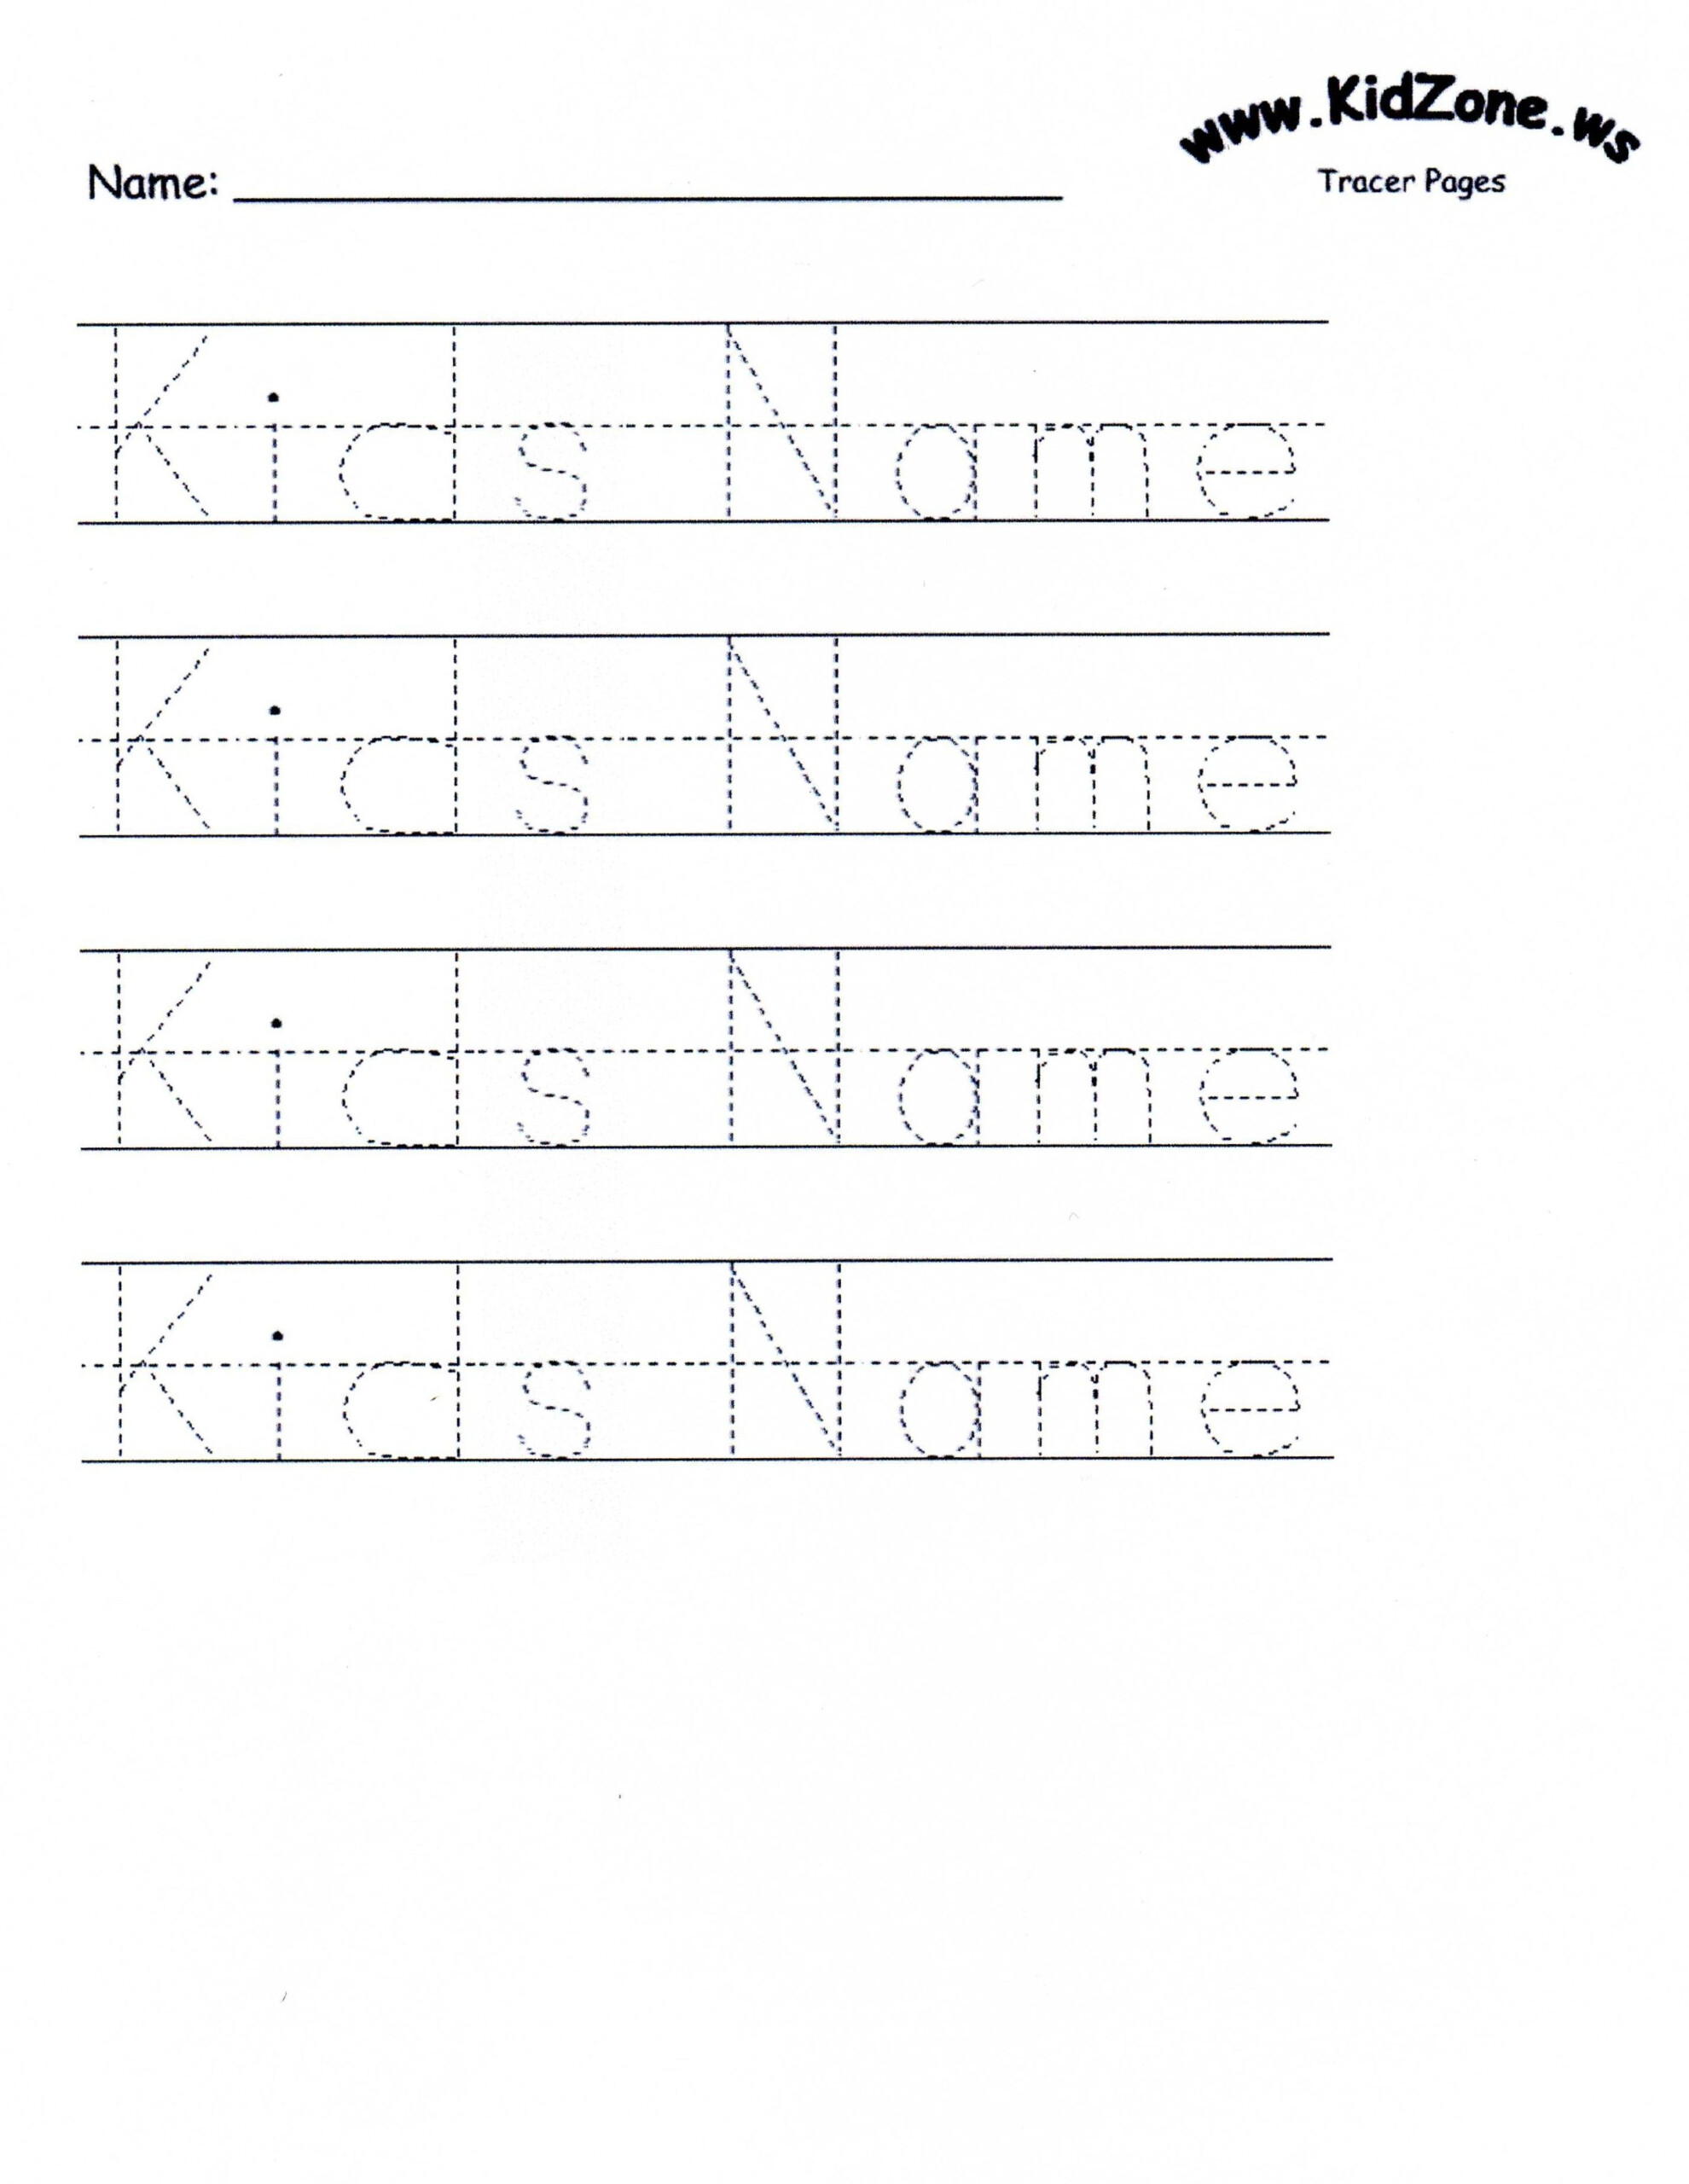 Customizable Printable Letter Pages | Preschool Names, Name throughout Letter Tracing Worksheets Custom